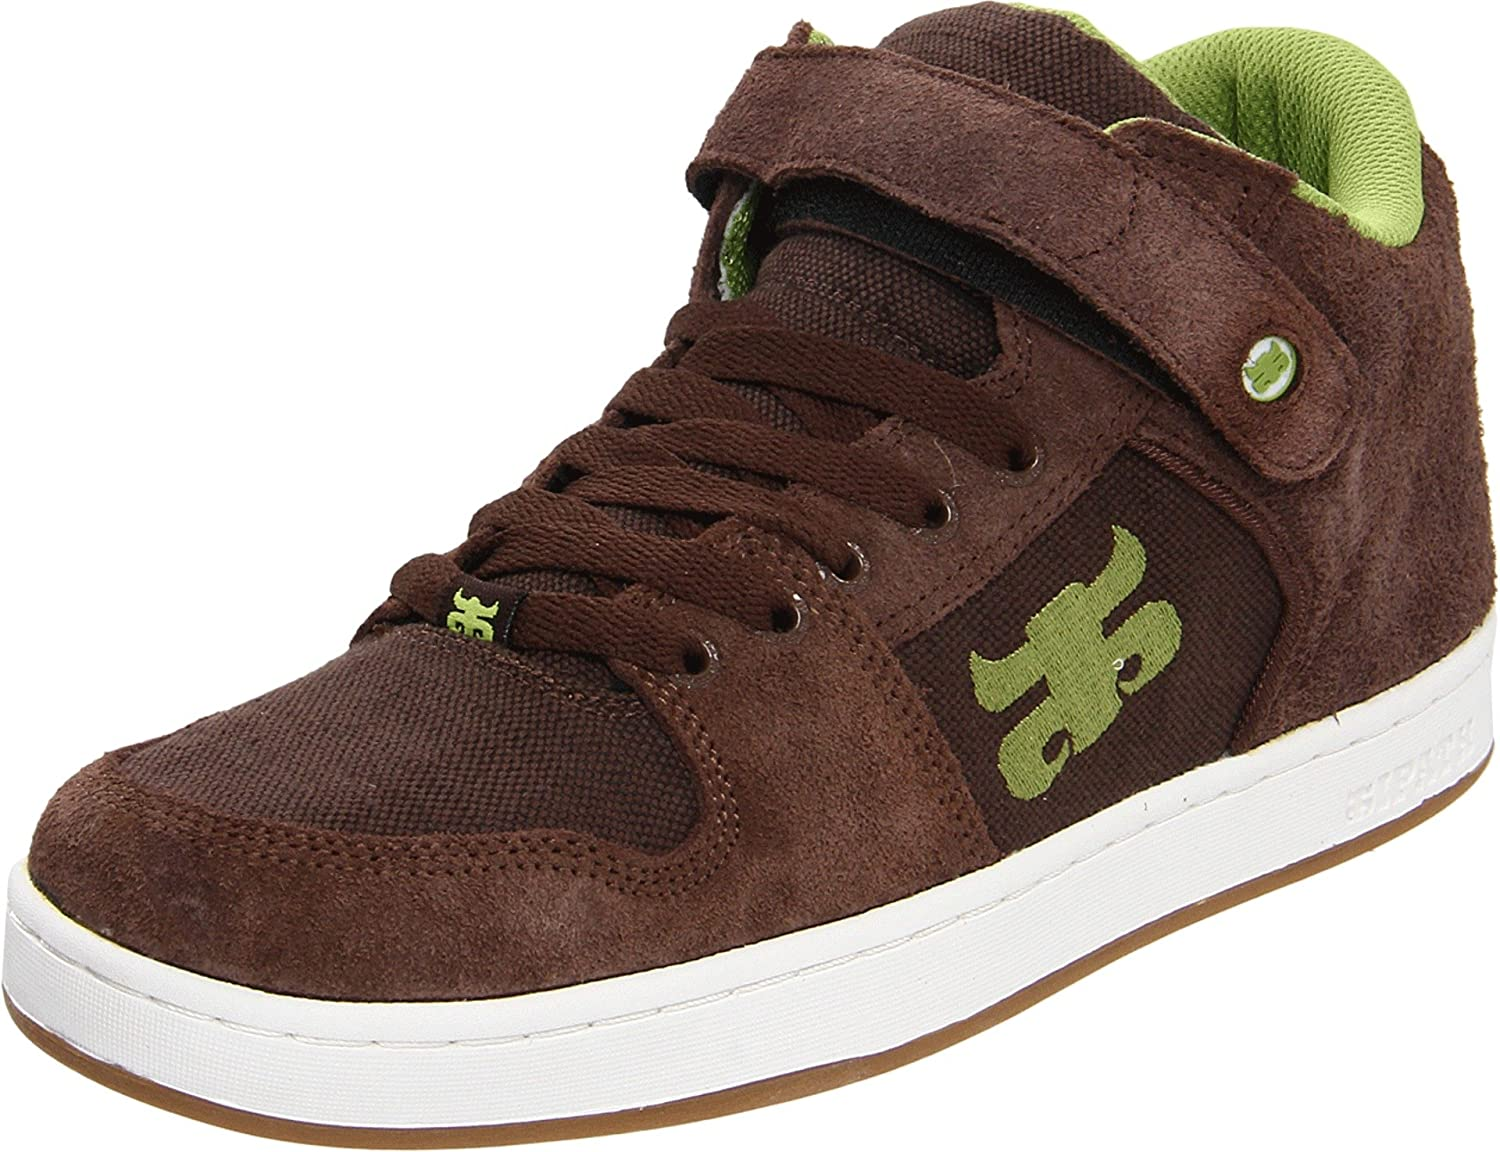 timeless design be635 37381 Amazon.com  iPath Men s Grasshopper Lace-Up Fashion Sneaker  Shoes